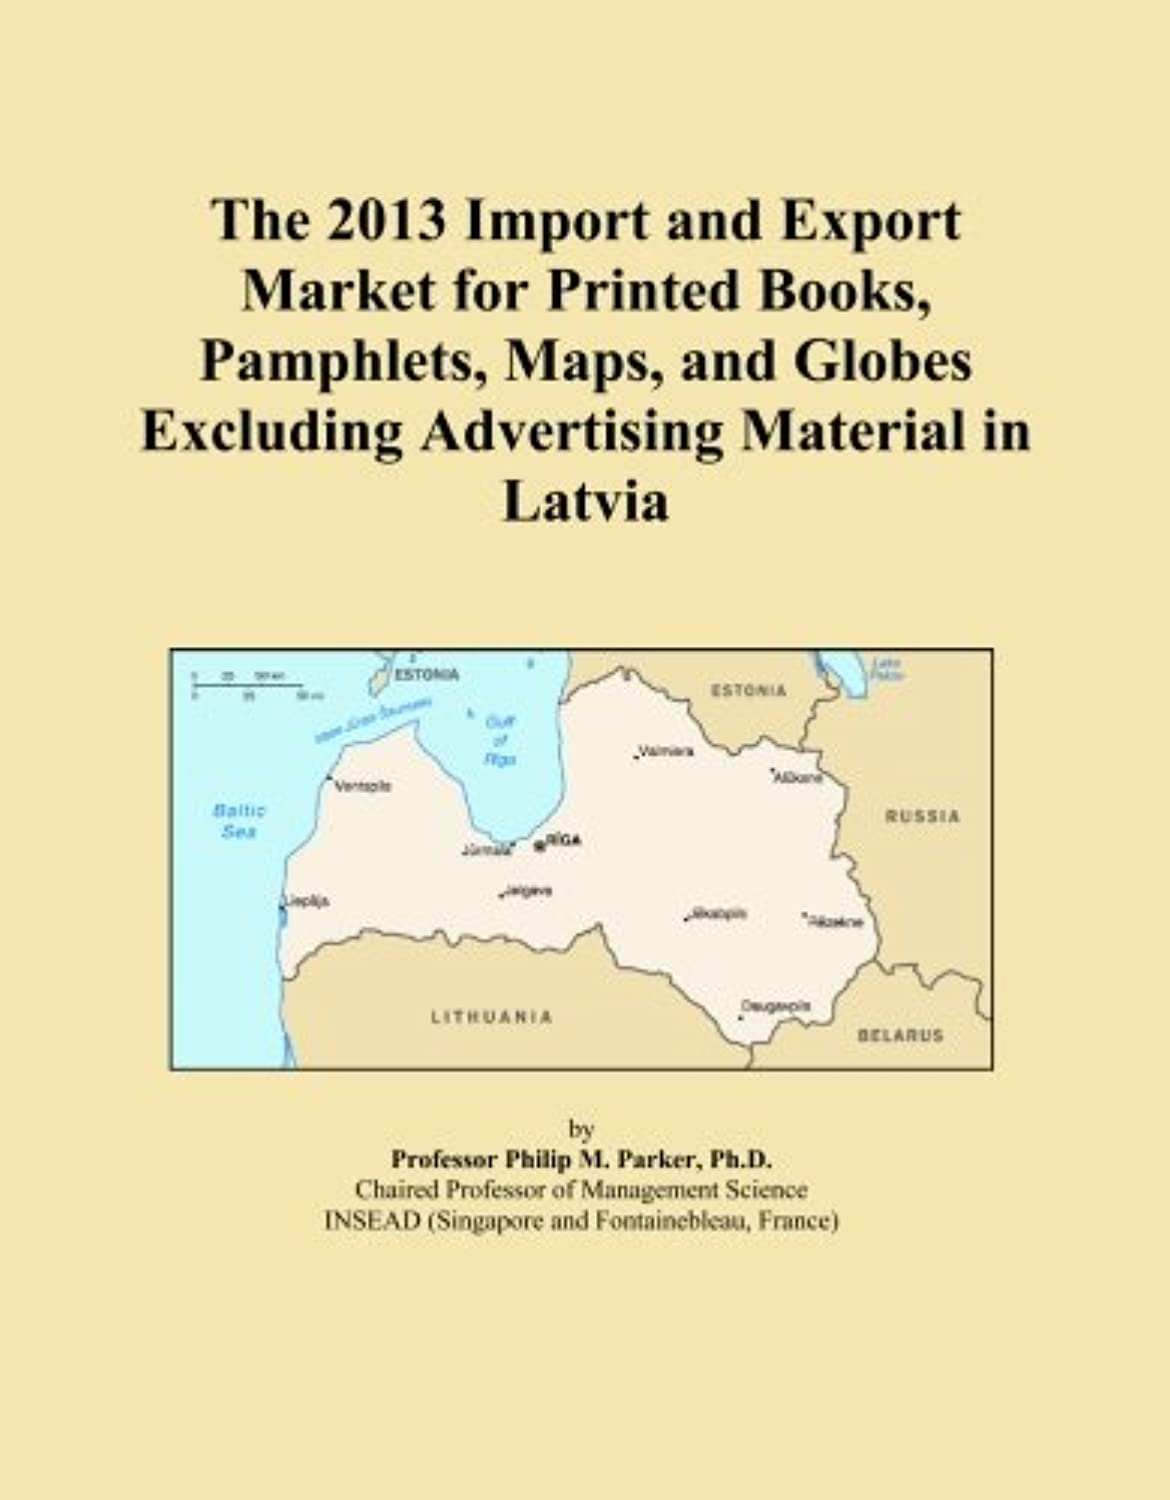 The 2013 Import and Export Market for Printed Books, Pamphlets, Maps, and Globes Excluding Advertising Material in Latvia